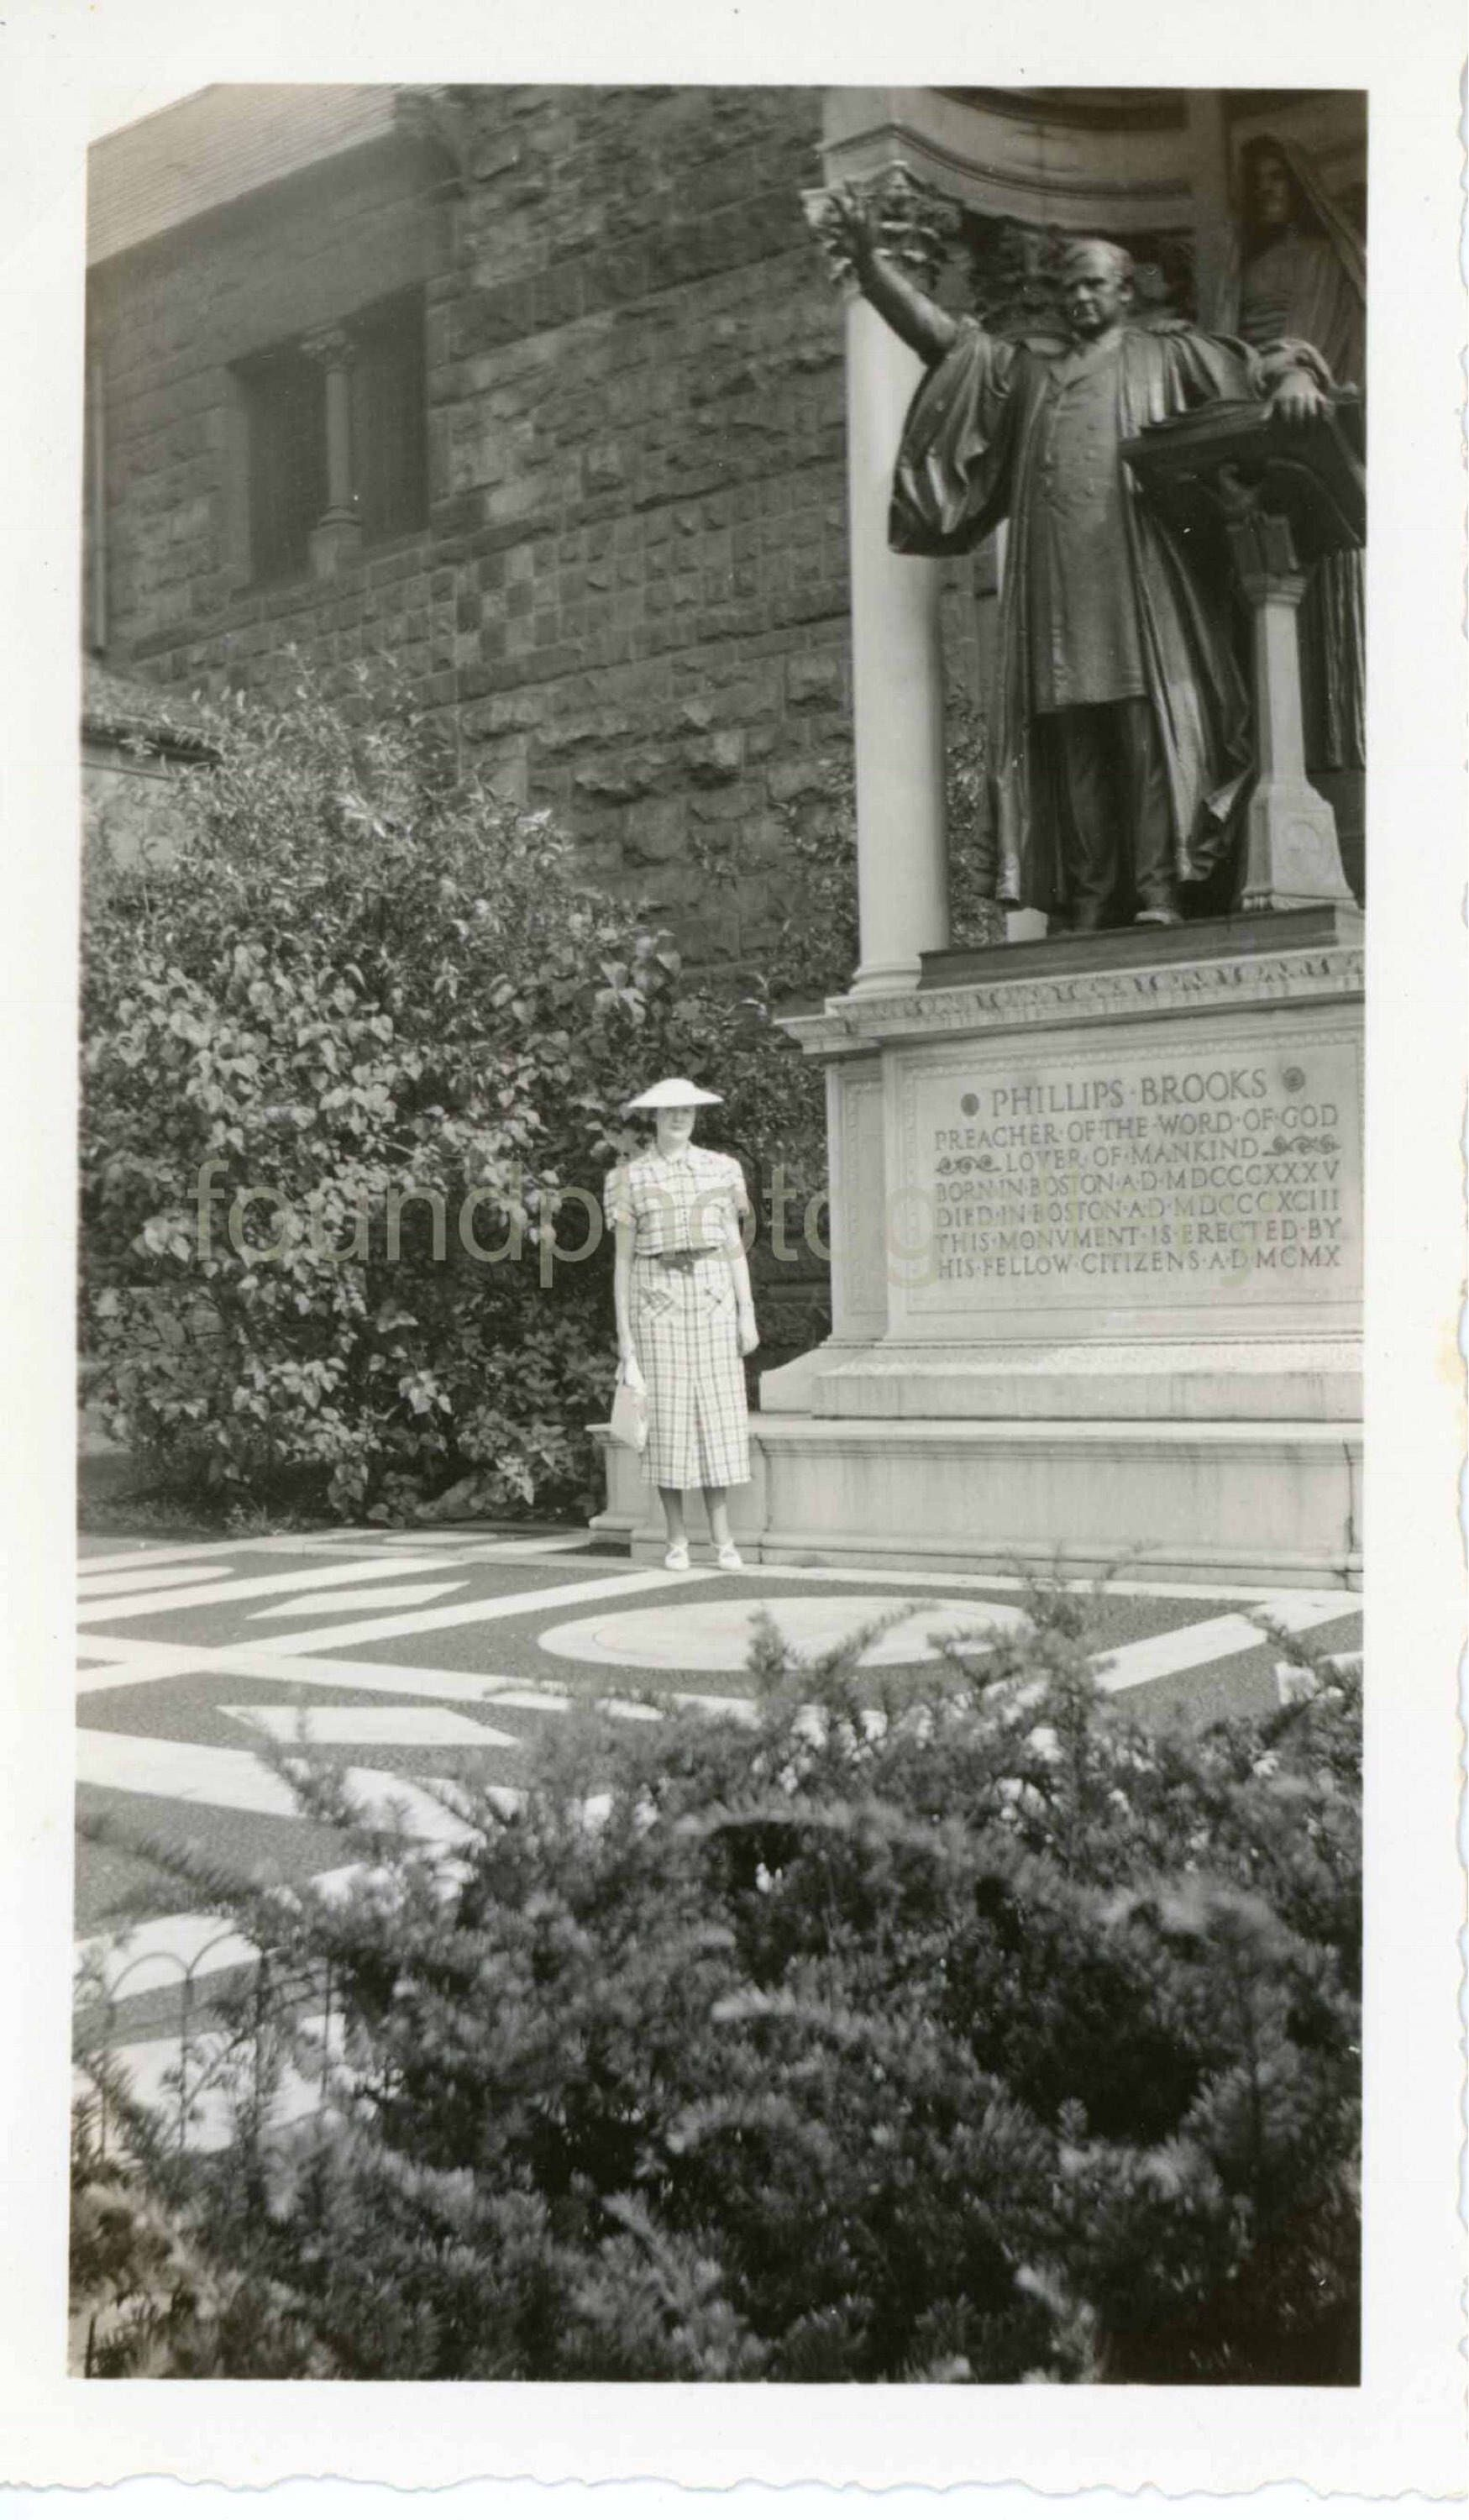 Available for sale in my etsyshop vintagephoto photoofwoman in front of trinitychurch bostonma 1930sfashion travelphoto snapshot blackwhitephoto